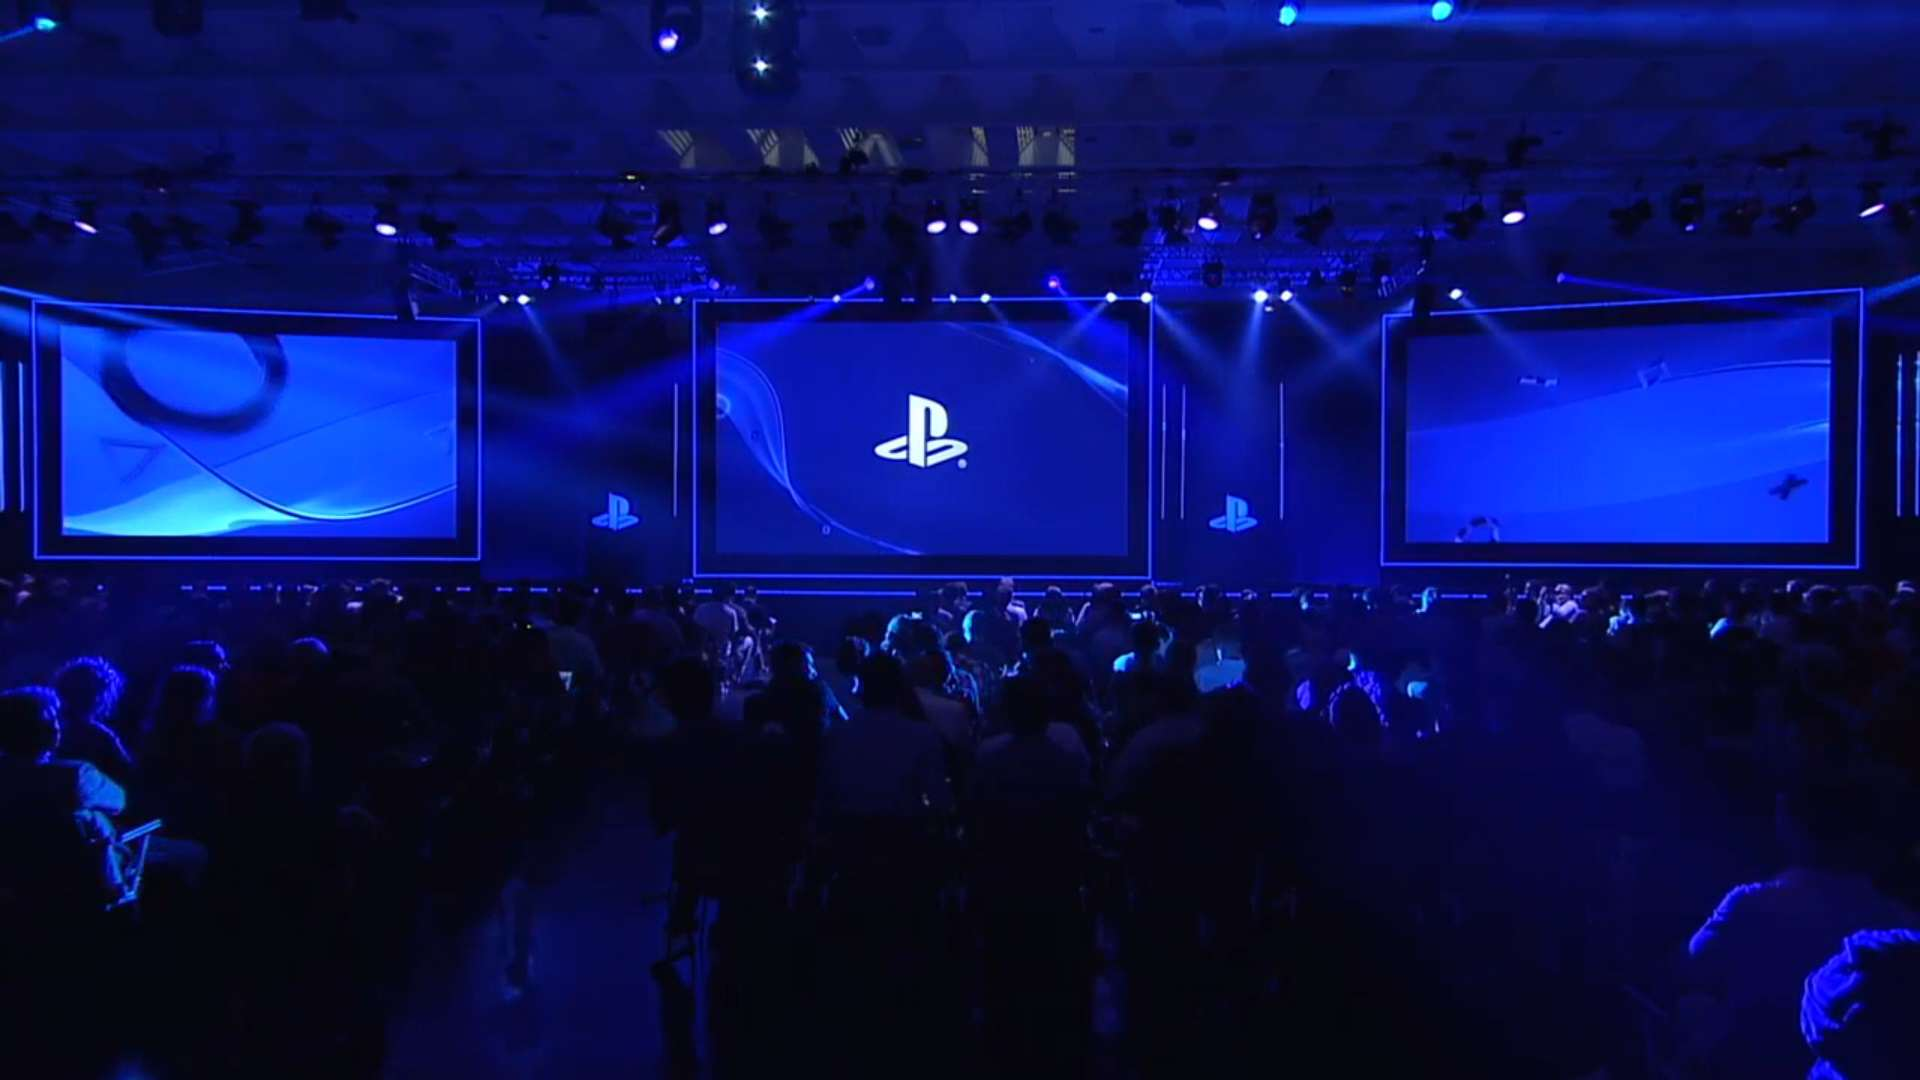 2e54199d3116b27041f1415baf54bbda Heres Everything Sony Has Planned For GamesCom 2016